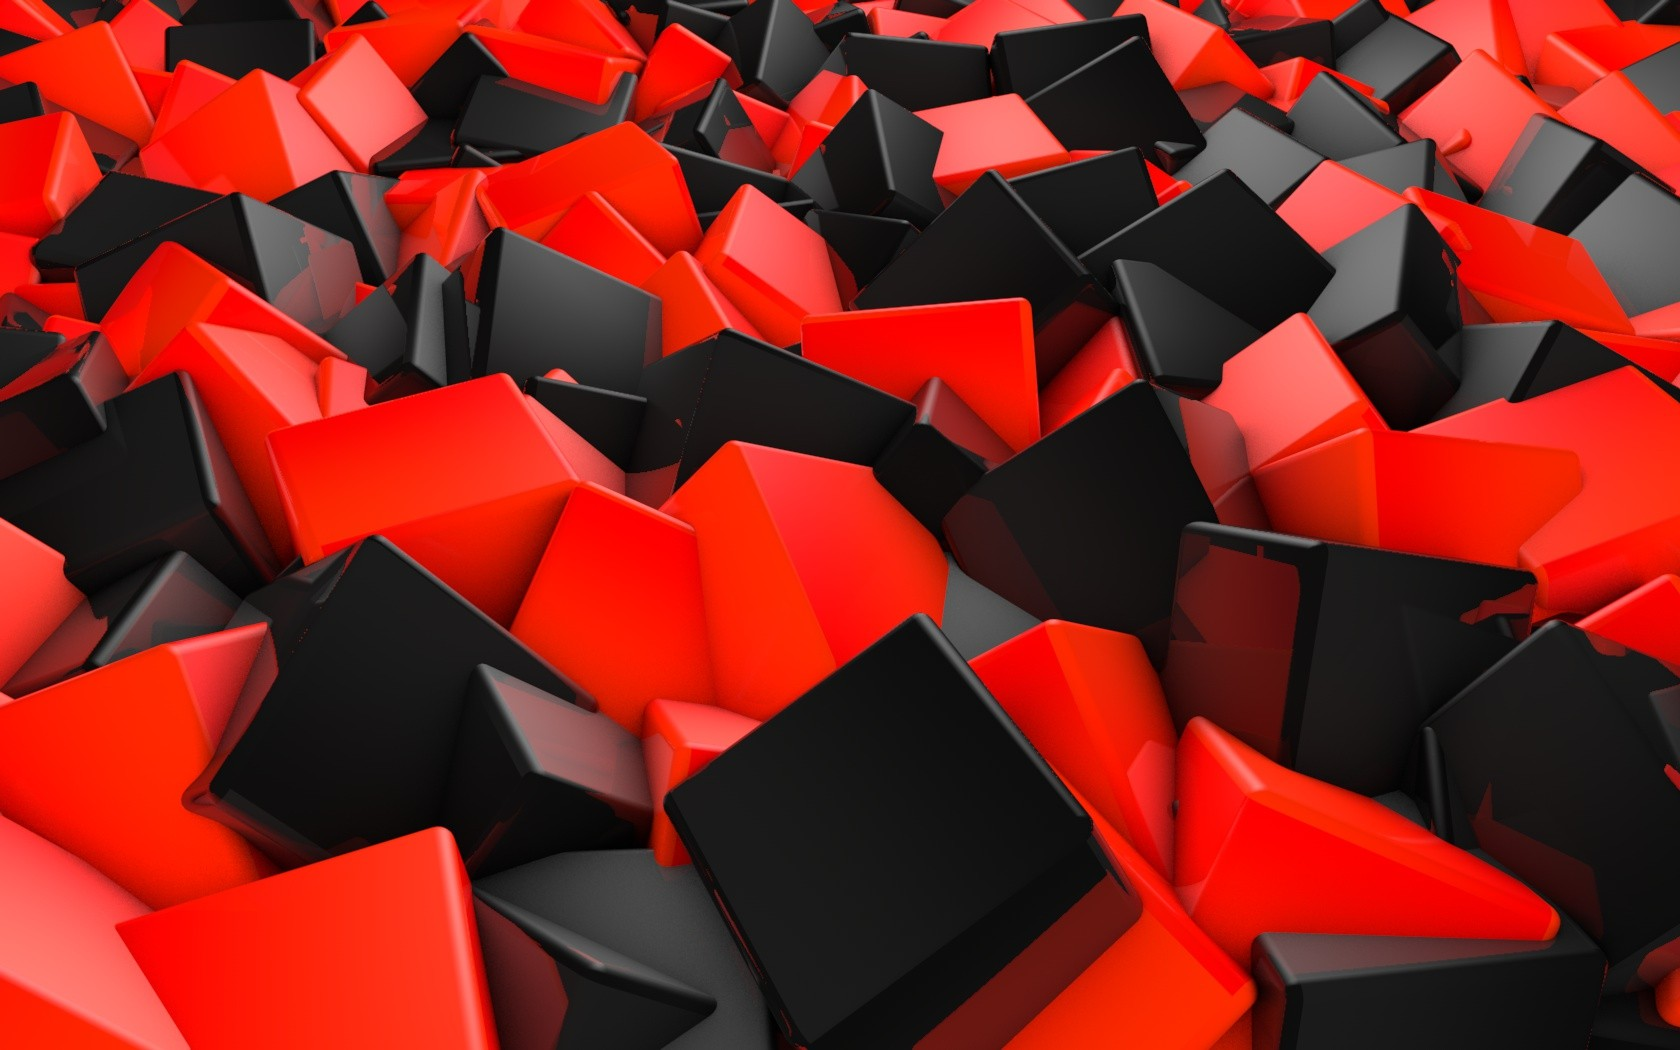 Hd wallpaper red and black - Black And Red Abstract Wallpaper 2628 Hd Wallpapers In Abstract